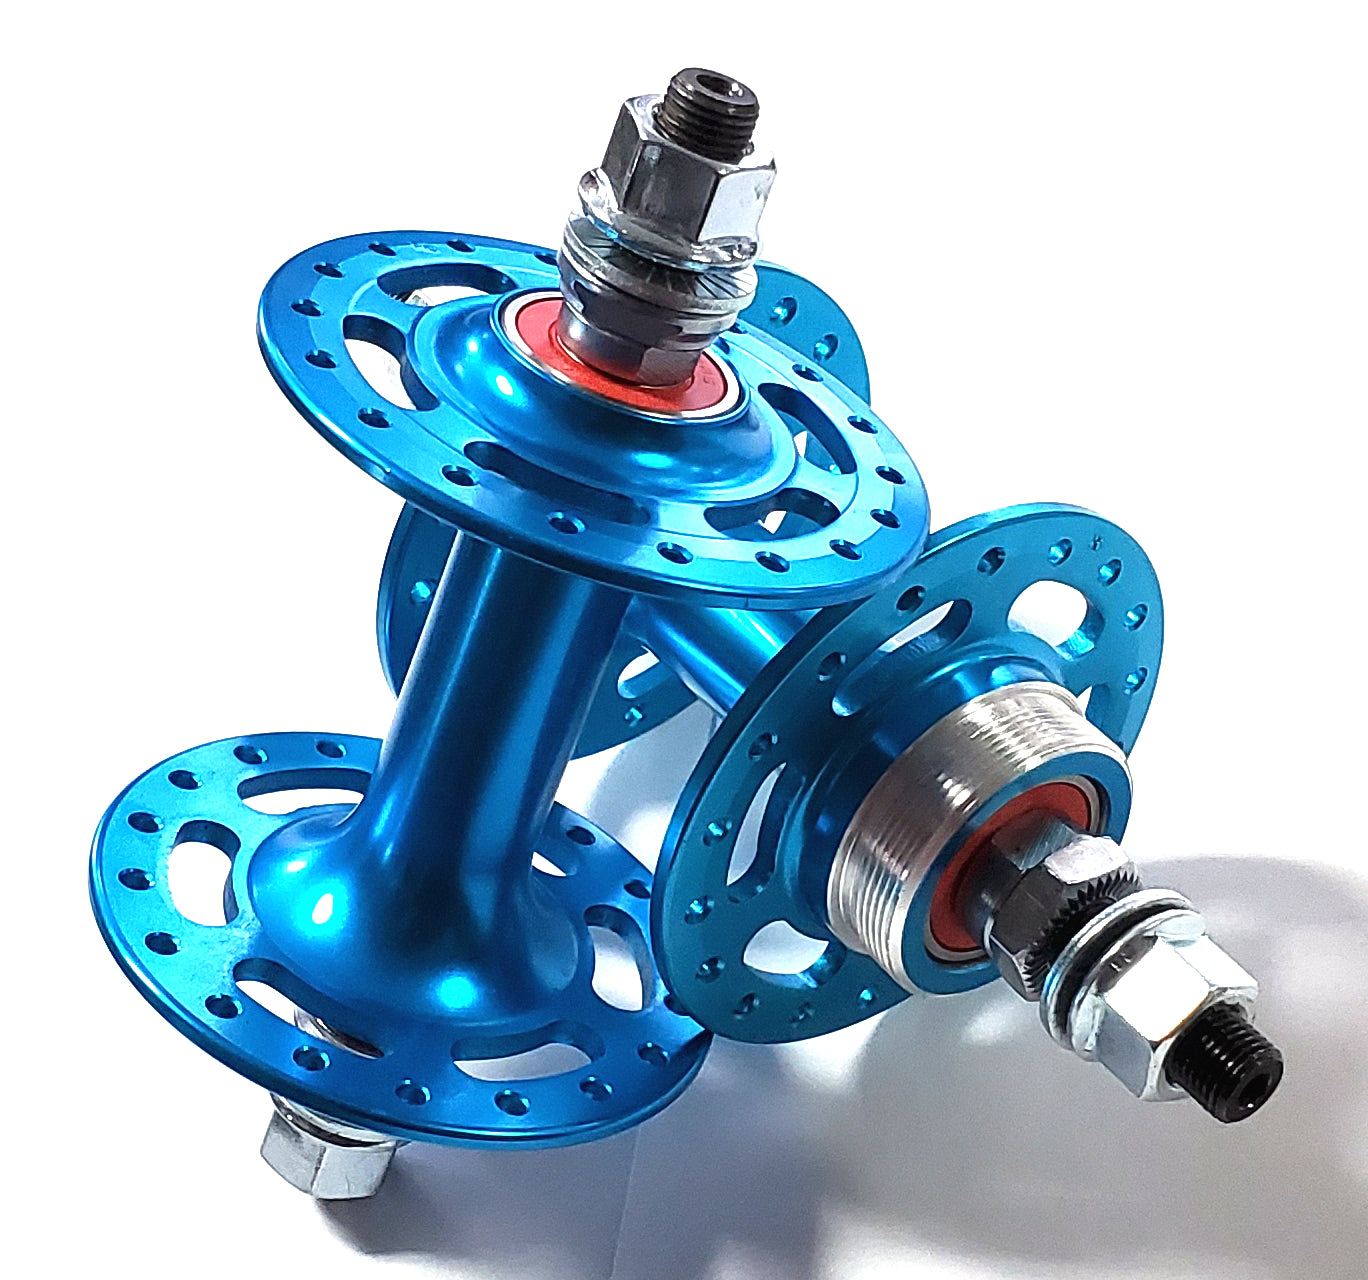 Retro Sealed High Flange w/ Cut-outs BMX Hubset - Blue - 36h 3/8""